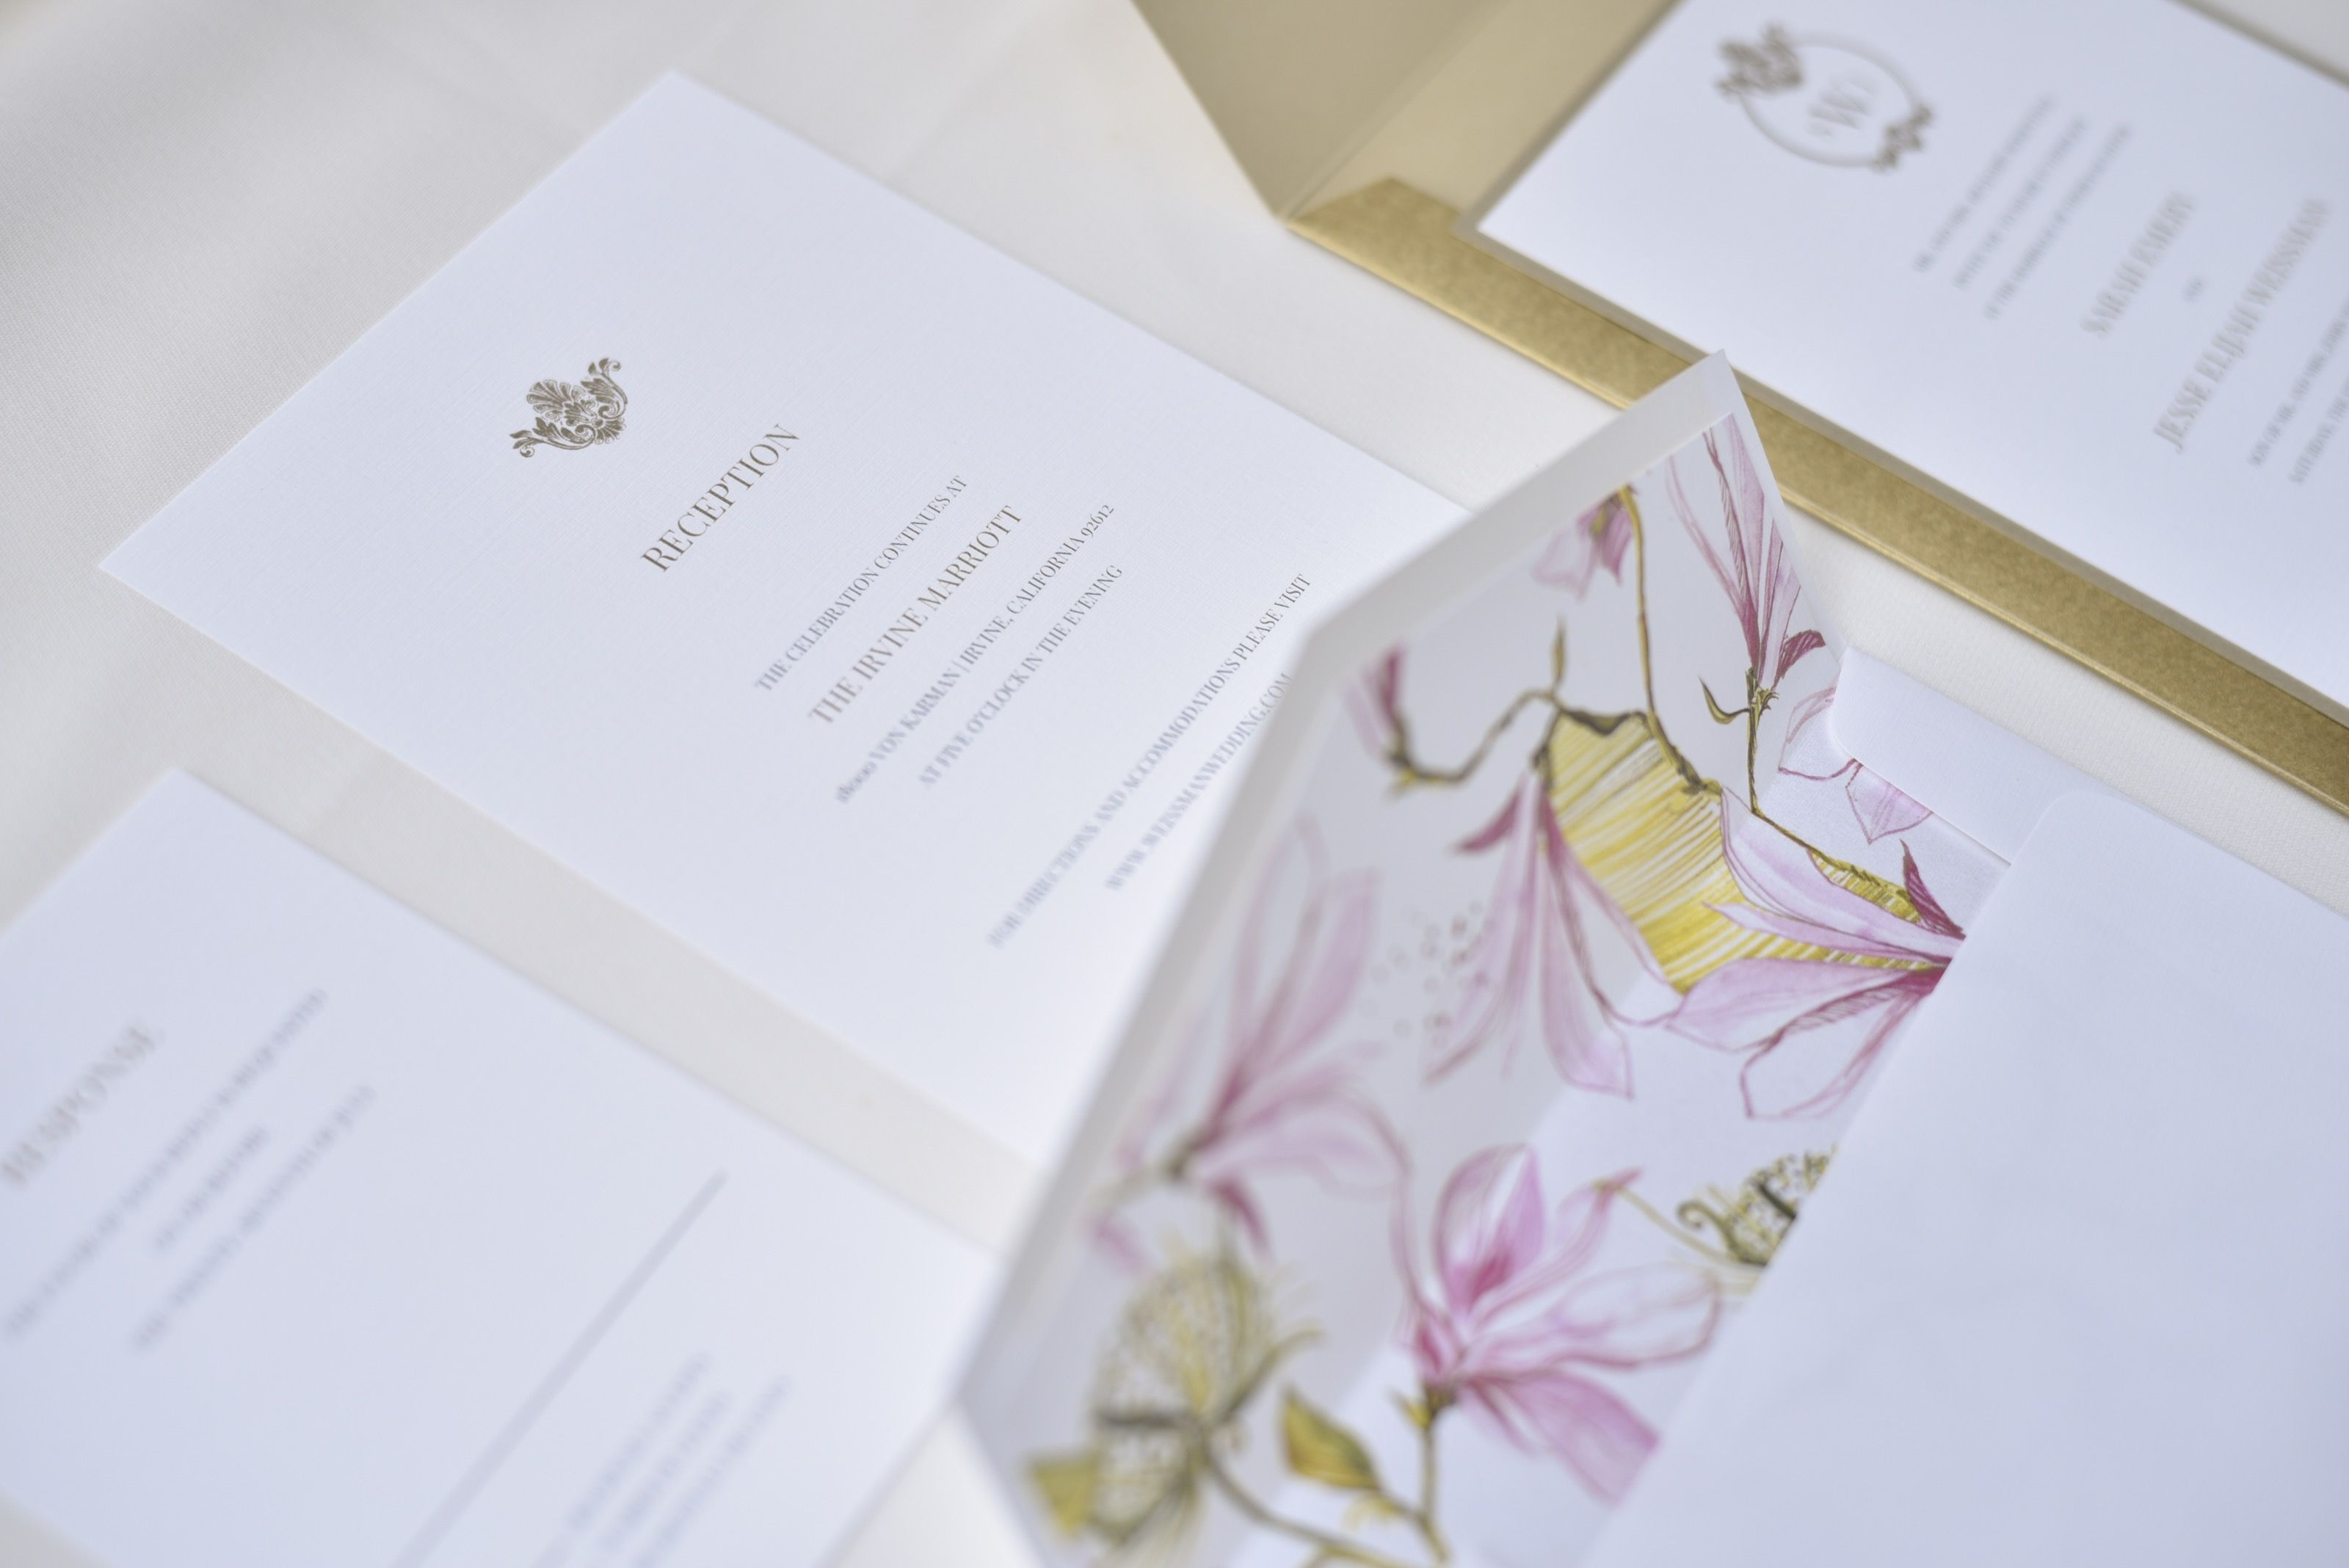 Personalised weddings invitation cards by paper pressed personalised weddings invitation cards by paper pressed photography by kimboon lim stopboris Choice Image